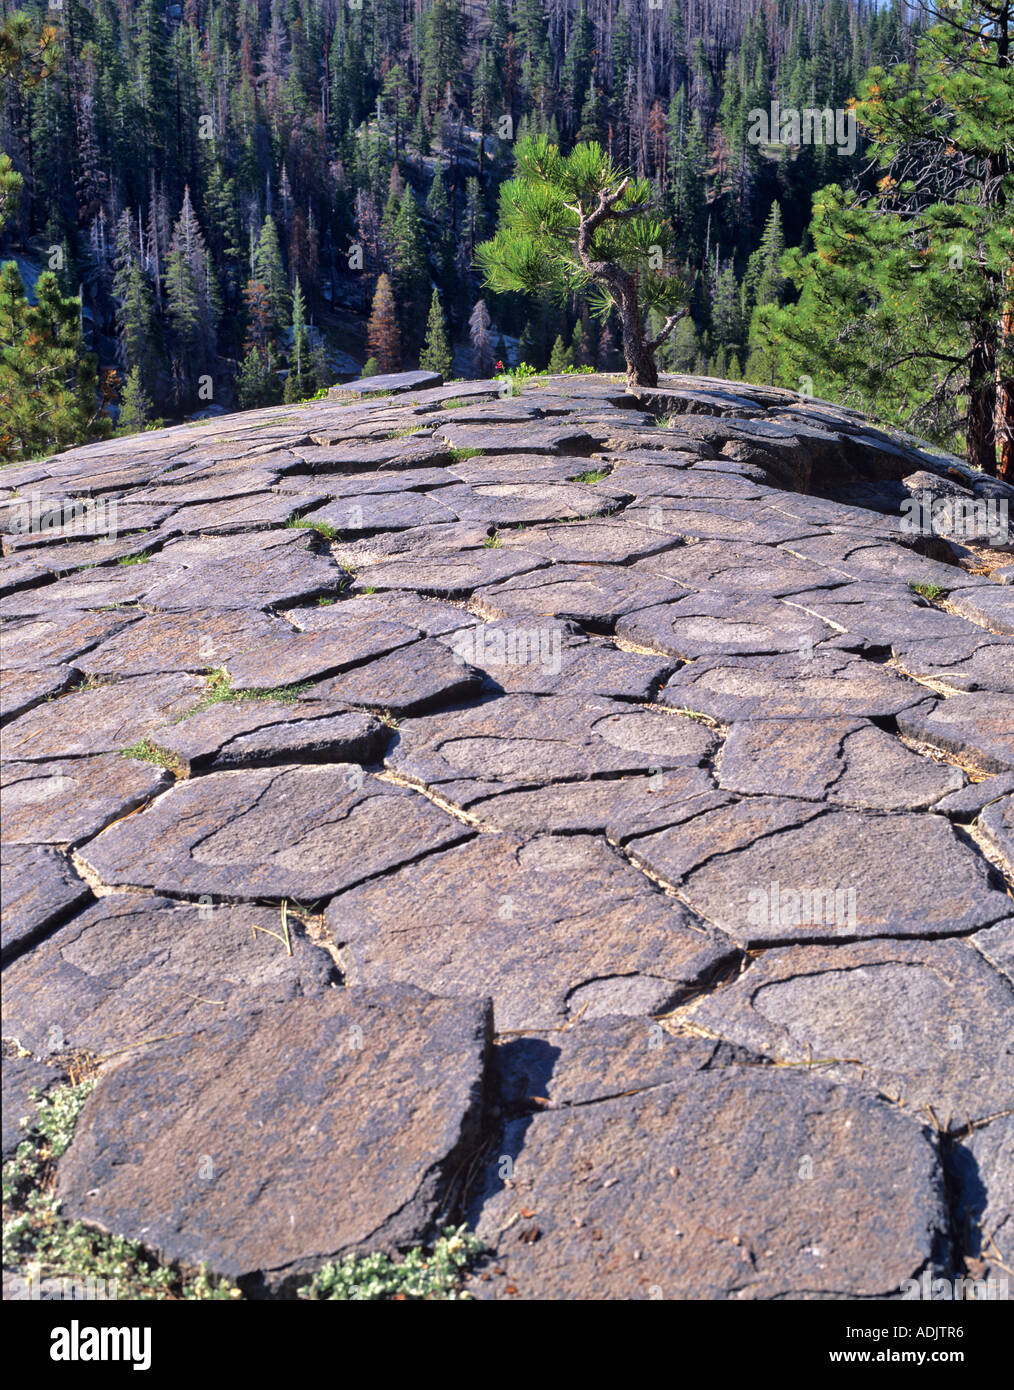 Glaciated tops of jointed columns and tree at Devils Postpile National Monument California - Stock Image